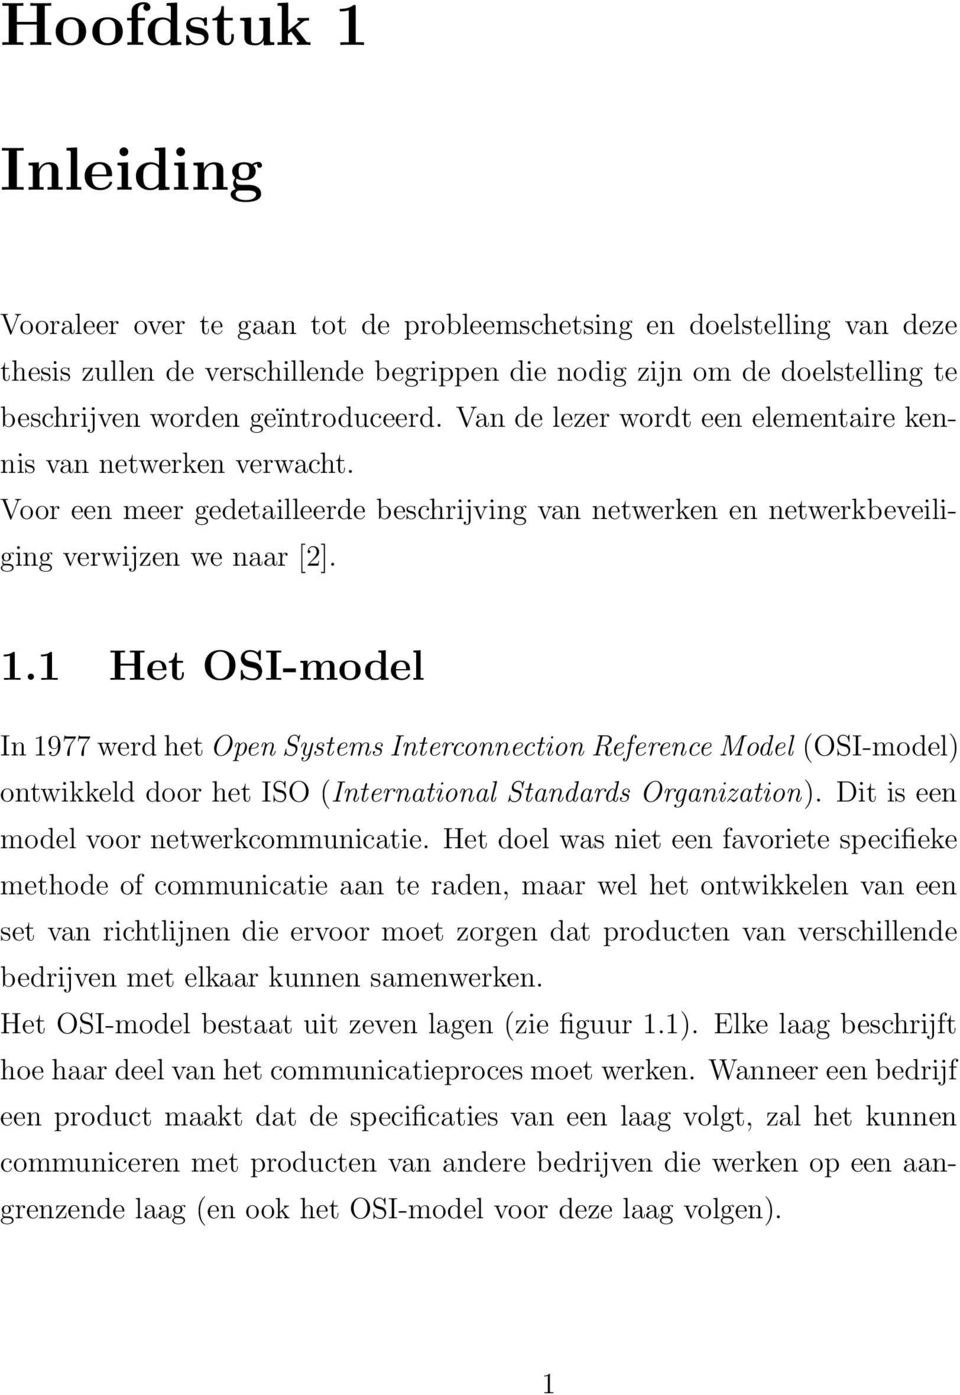 1 Het OSI-model In 1977 werd het Open Systems Interconnection Reference Model (OSI-model) ontwikkeld door het ISO (International Standards Organization). Dit is een model voor netwerkcommunicatie.